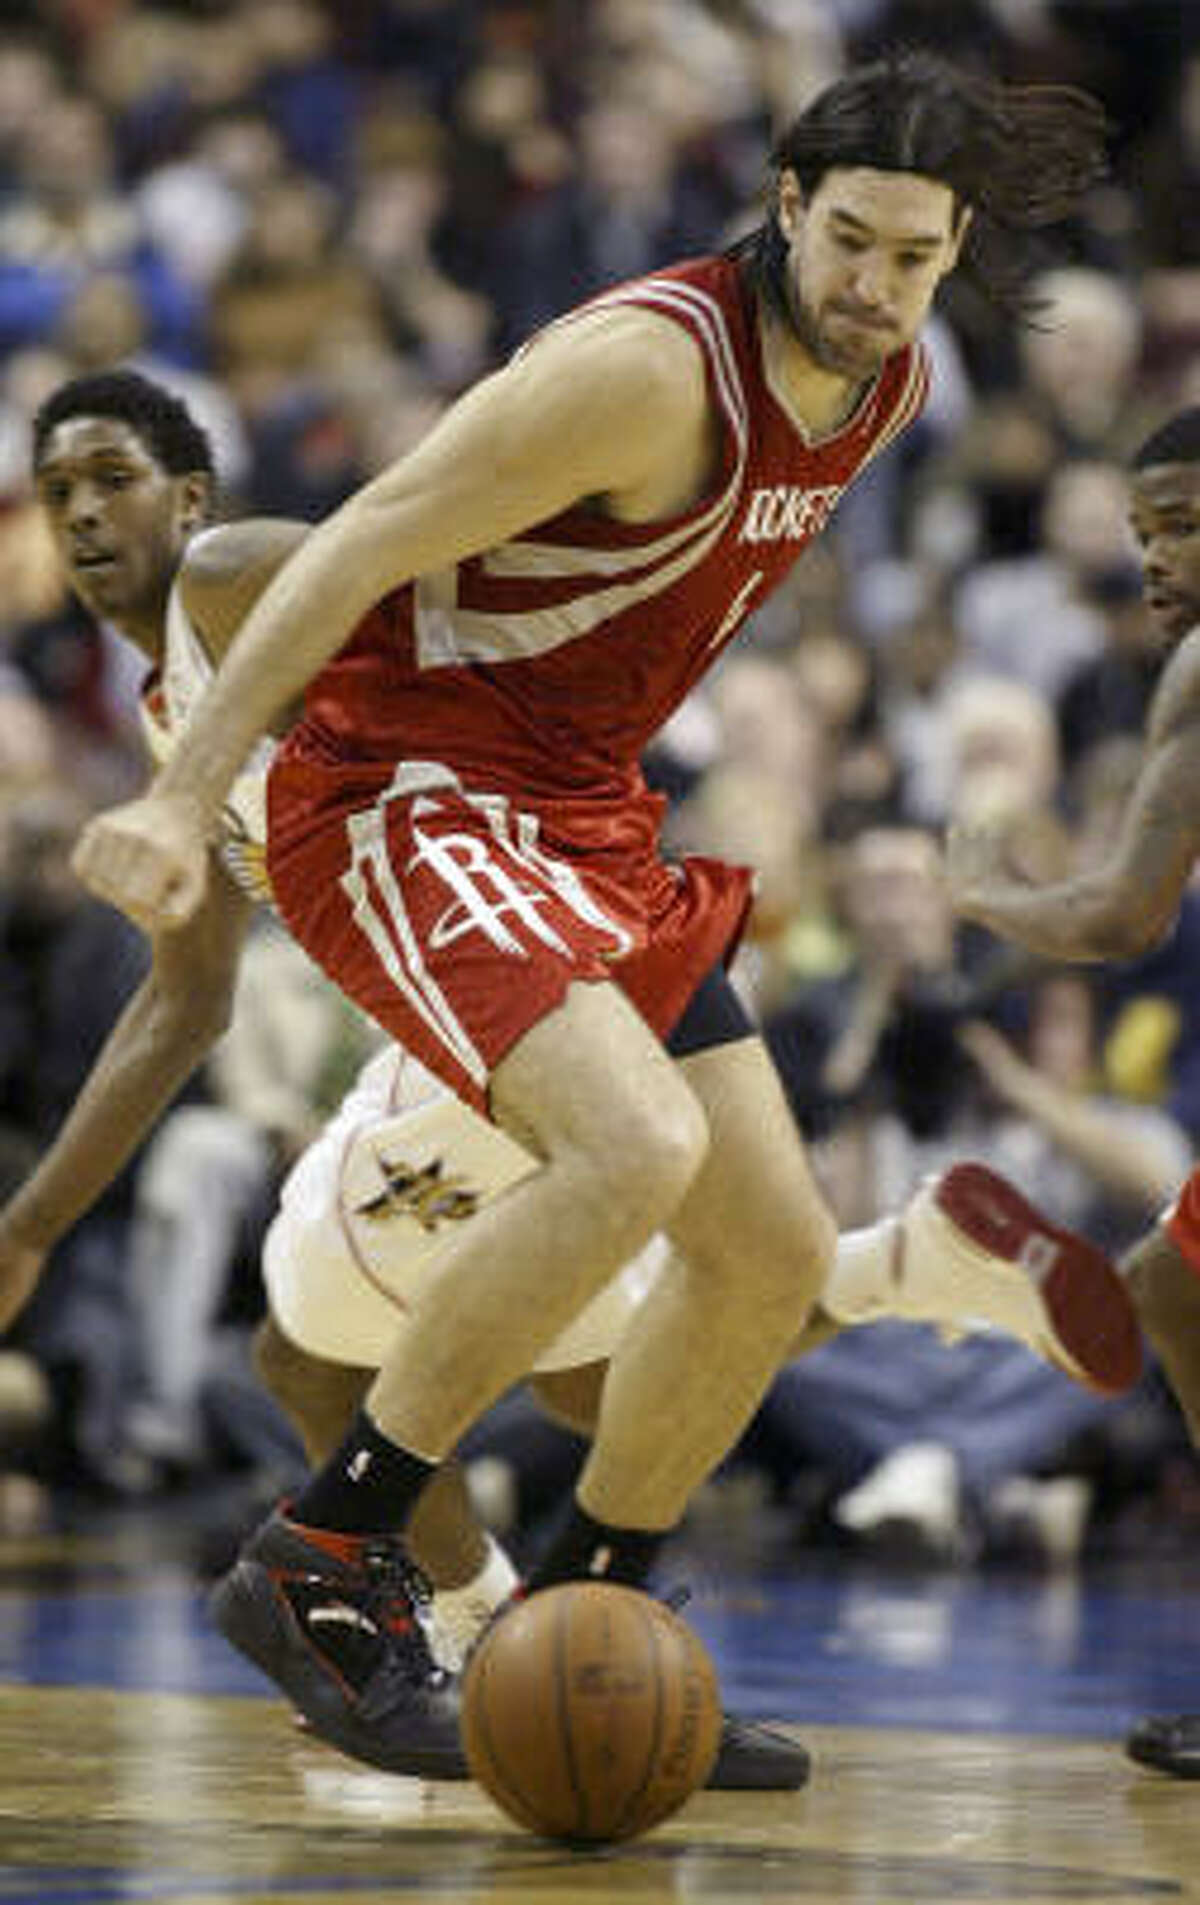 Luis Scola attempts to track down a loose ball in the second half.